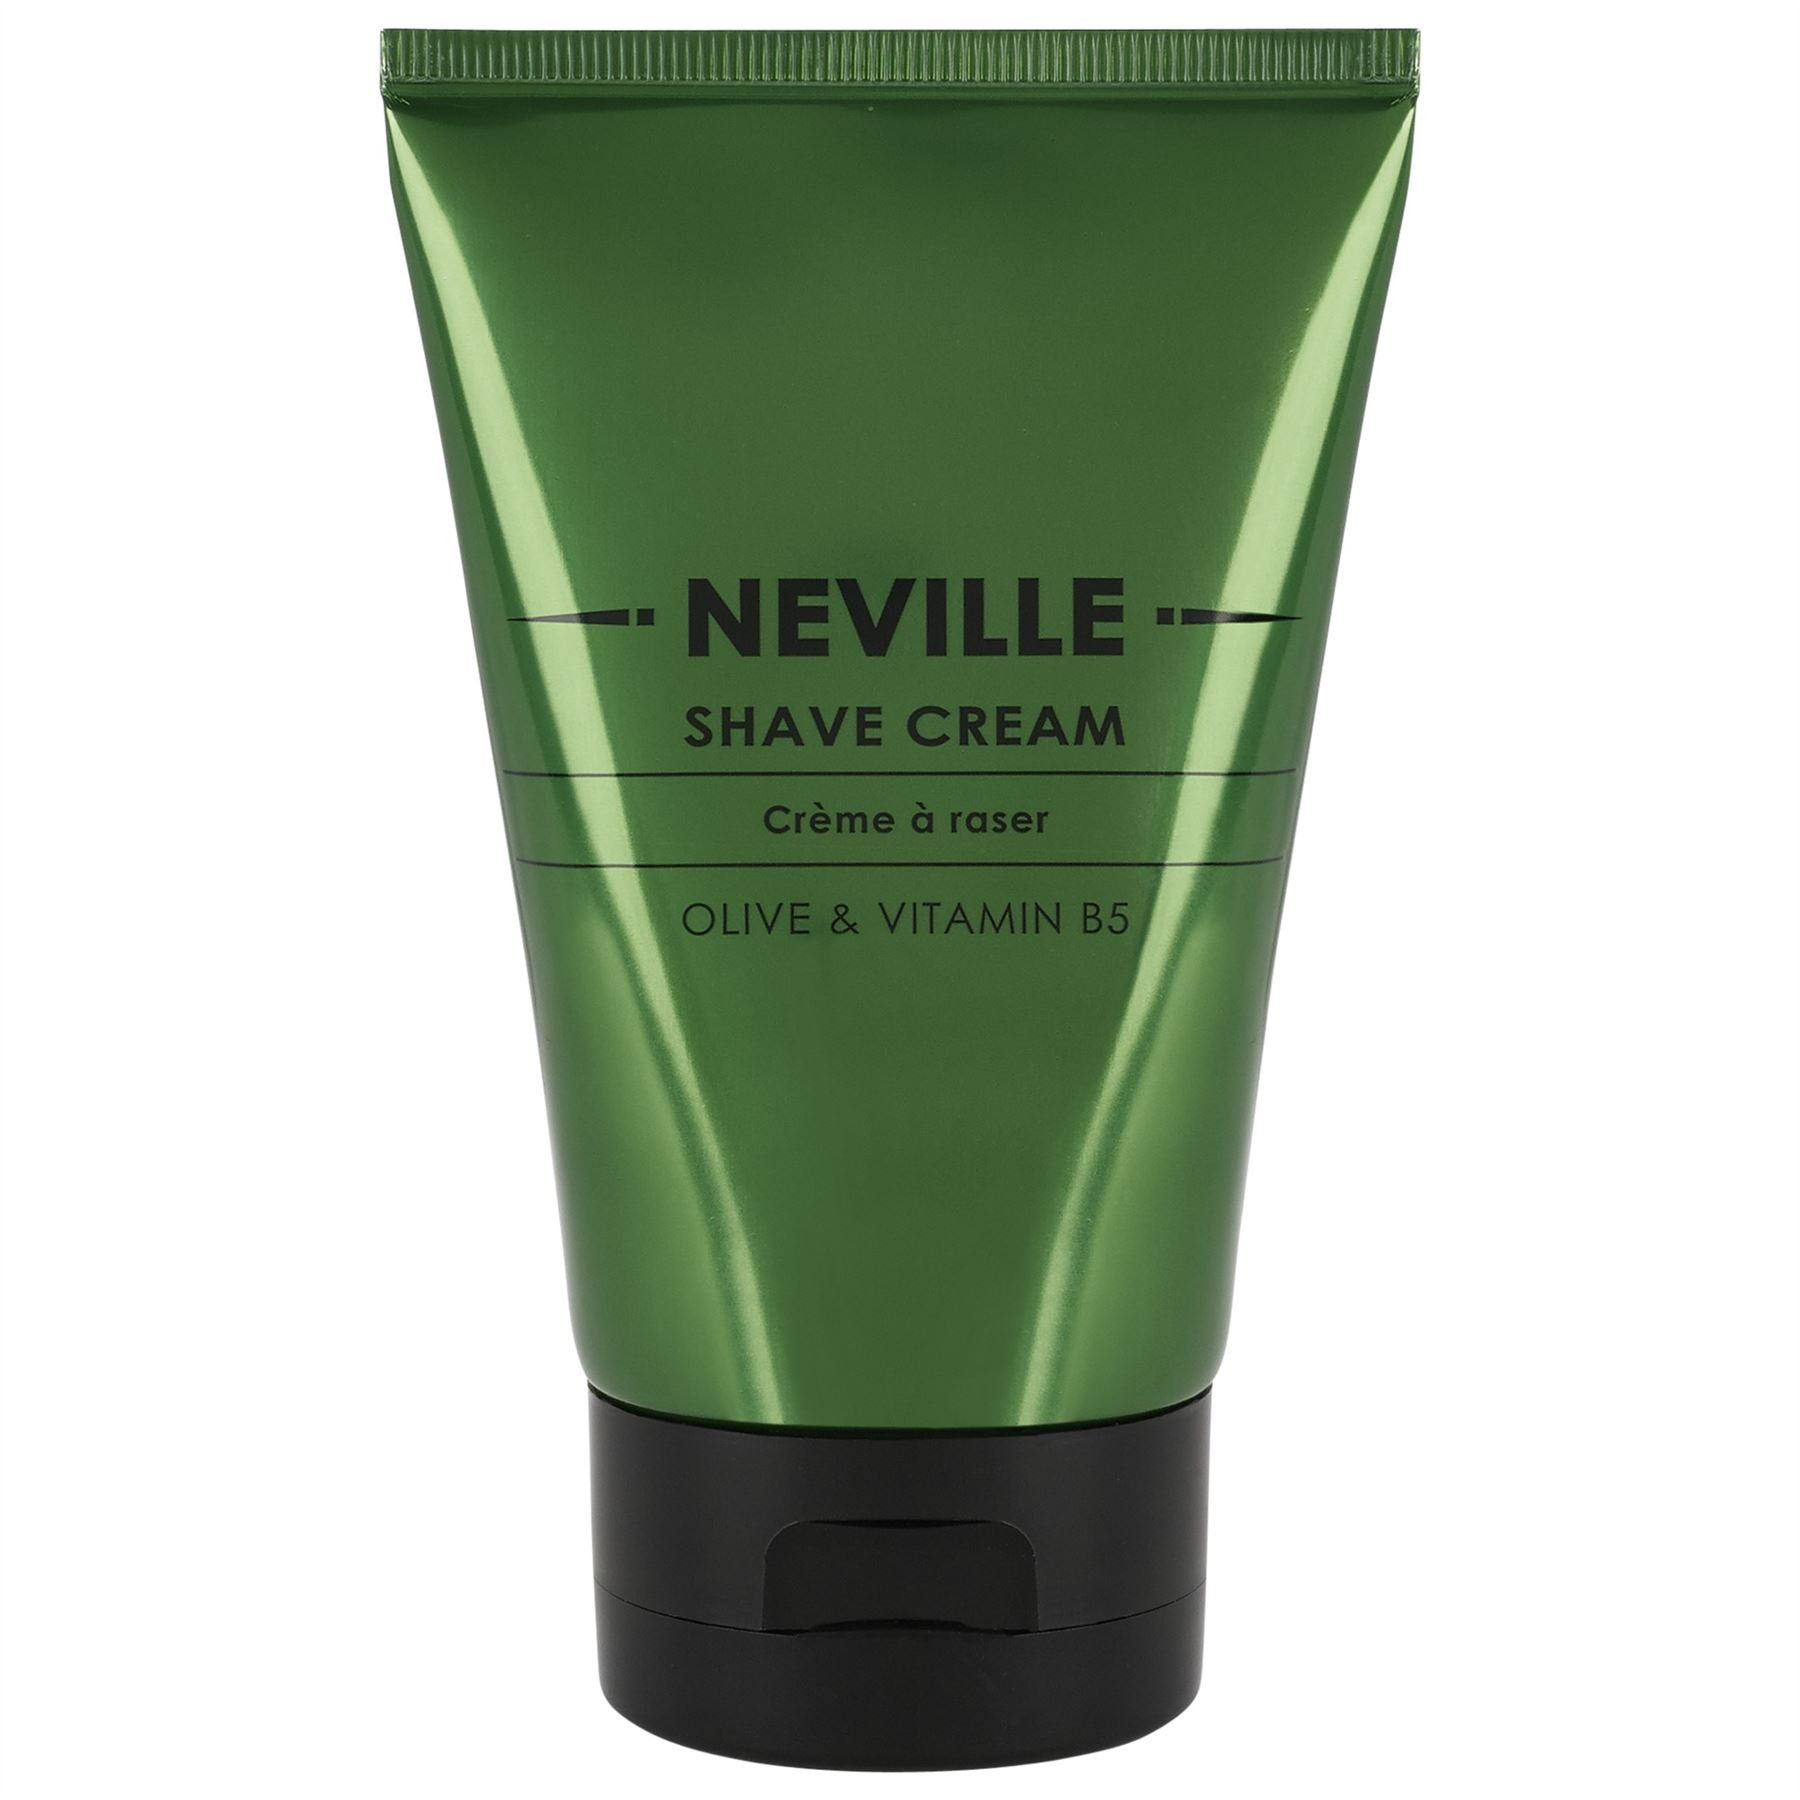 Neville Shave Cream 100ml - Pack of 6